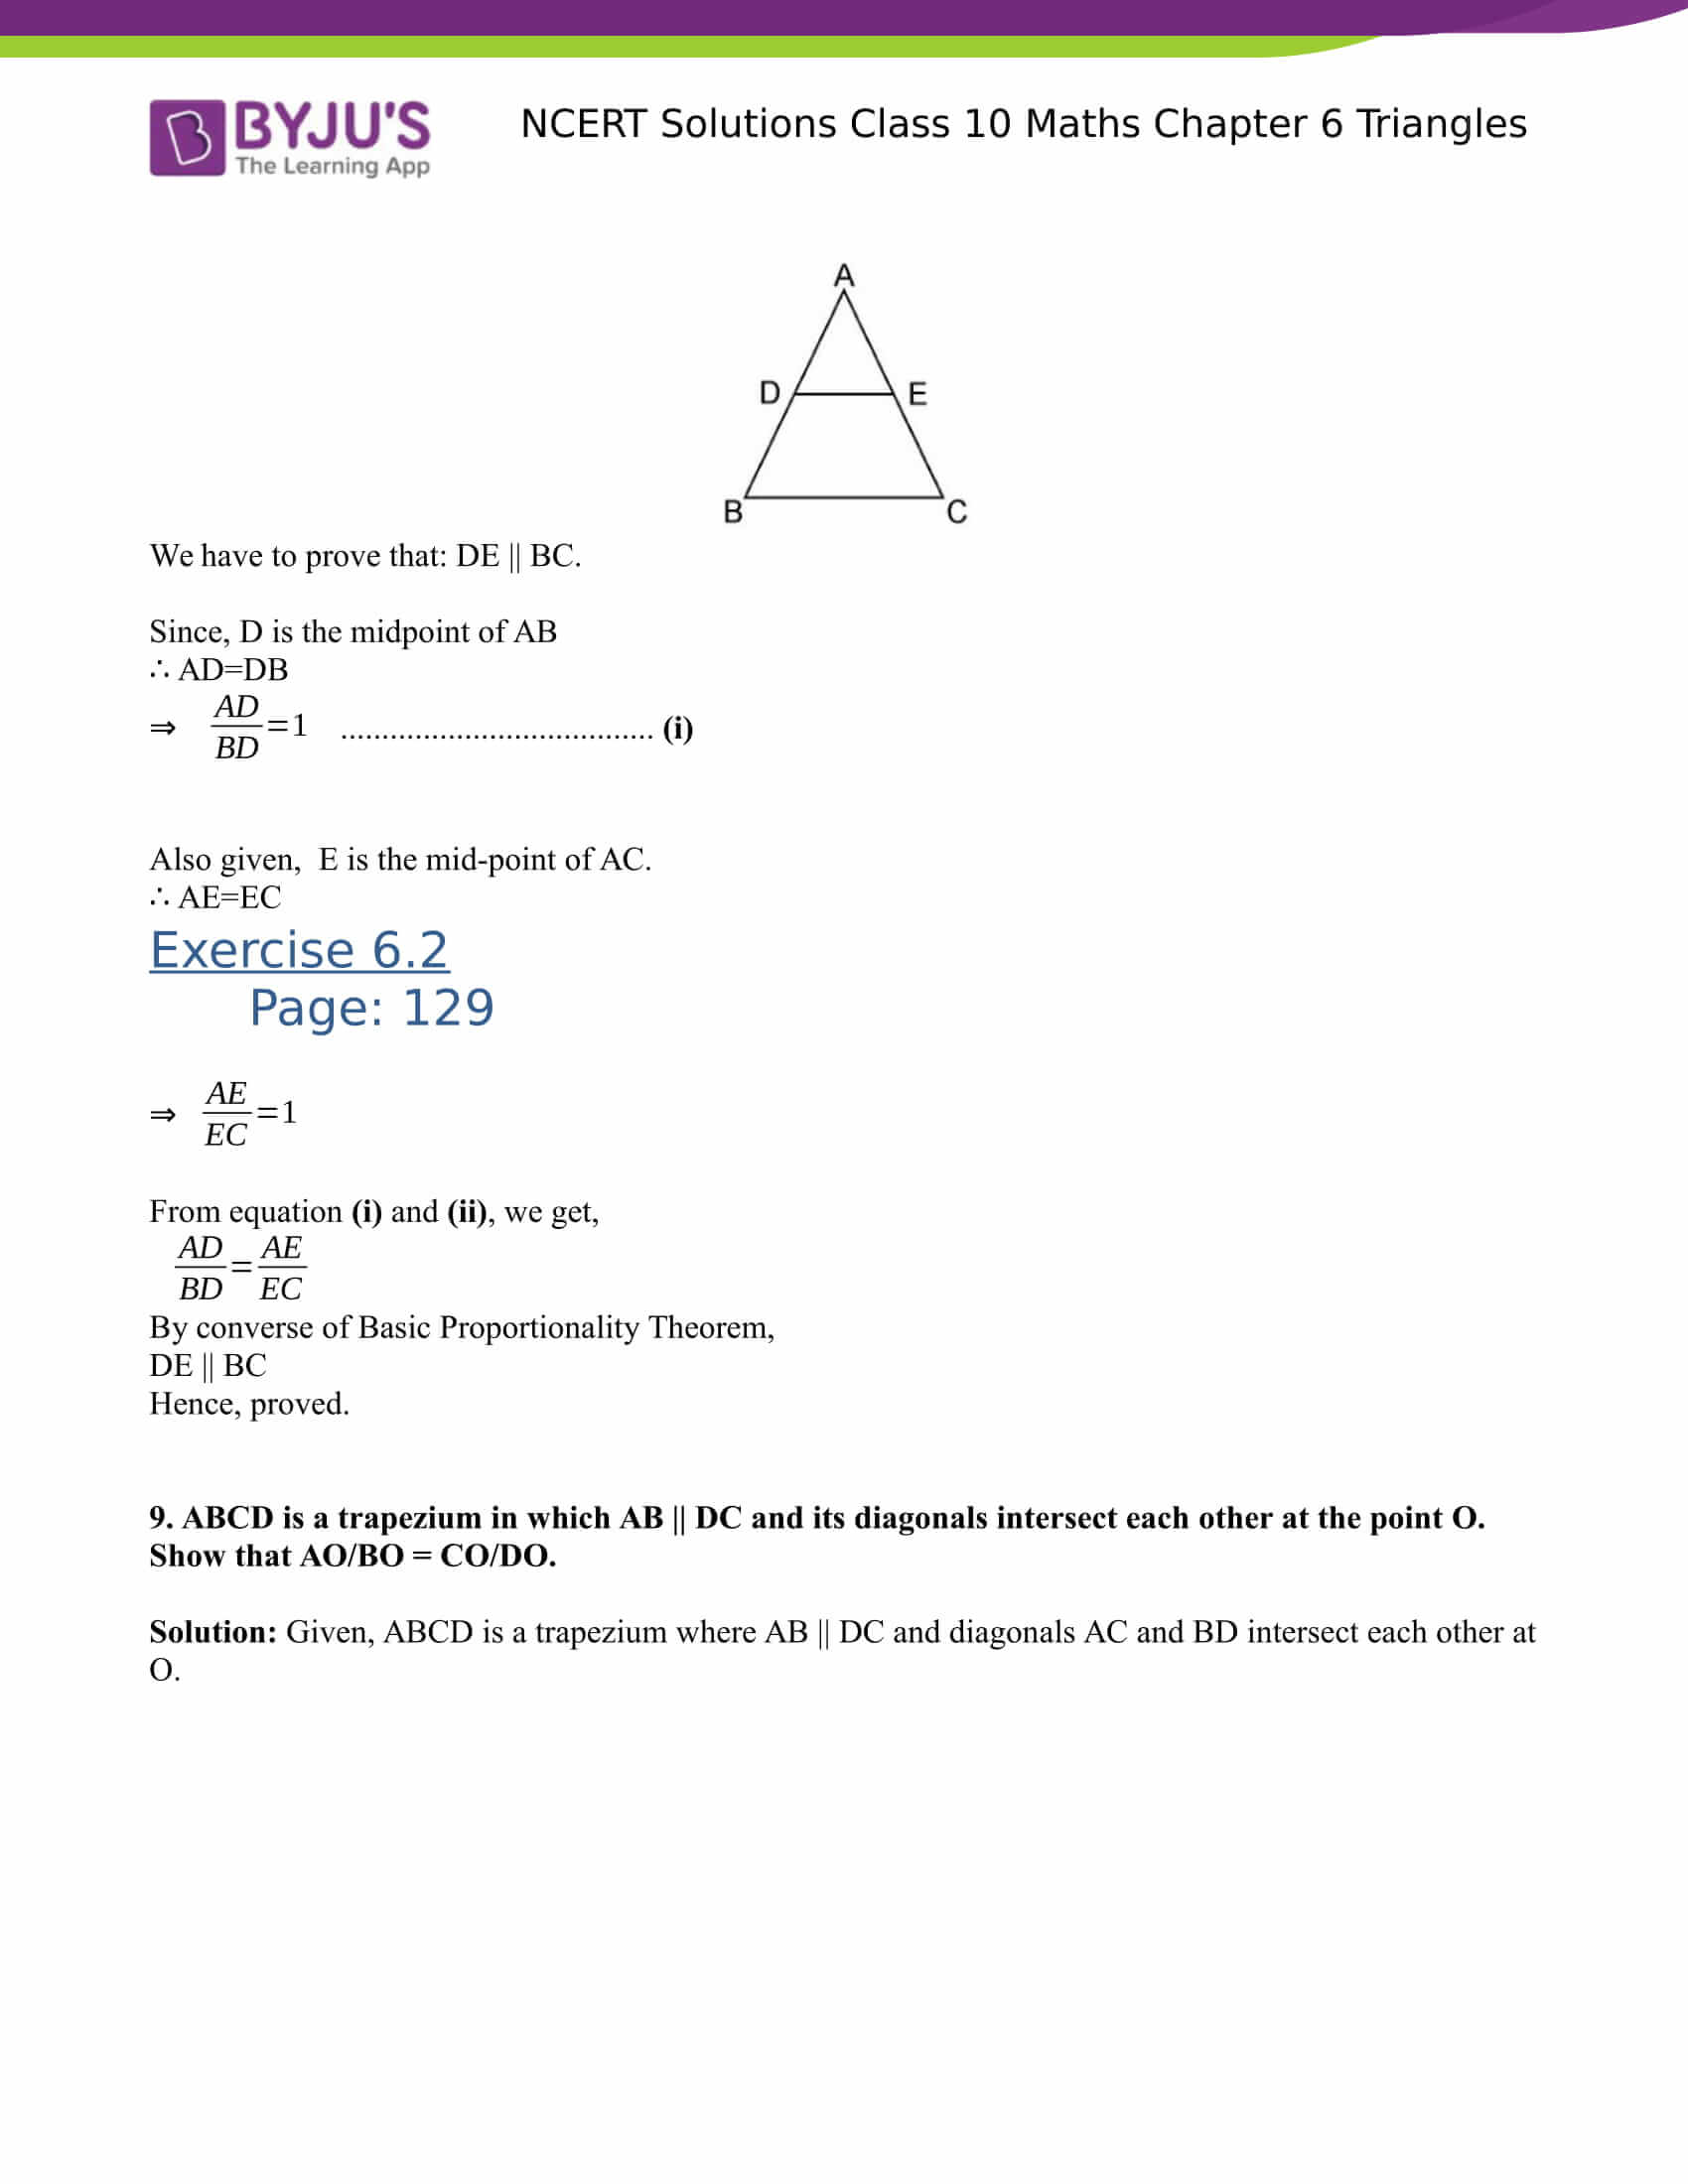 NCERT Solutions for class 10 Maths Chapter 6 Triangles Part 9